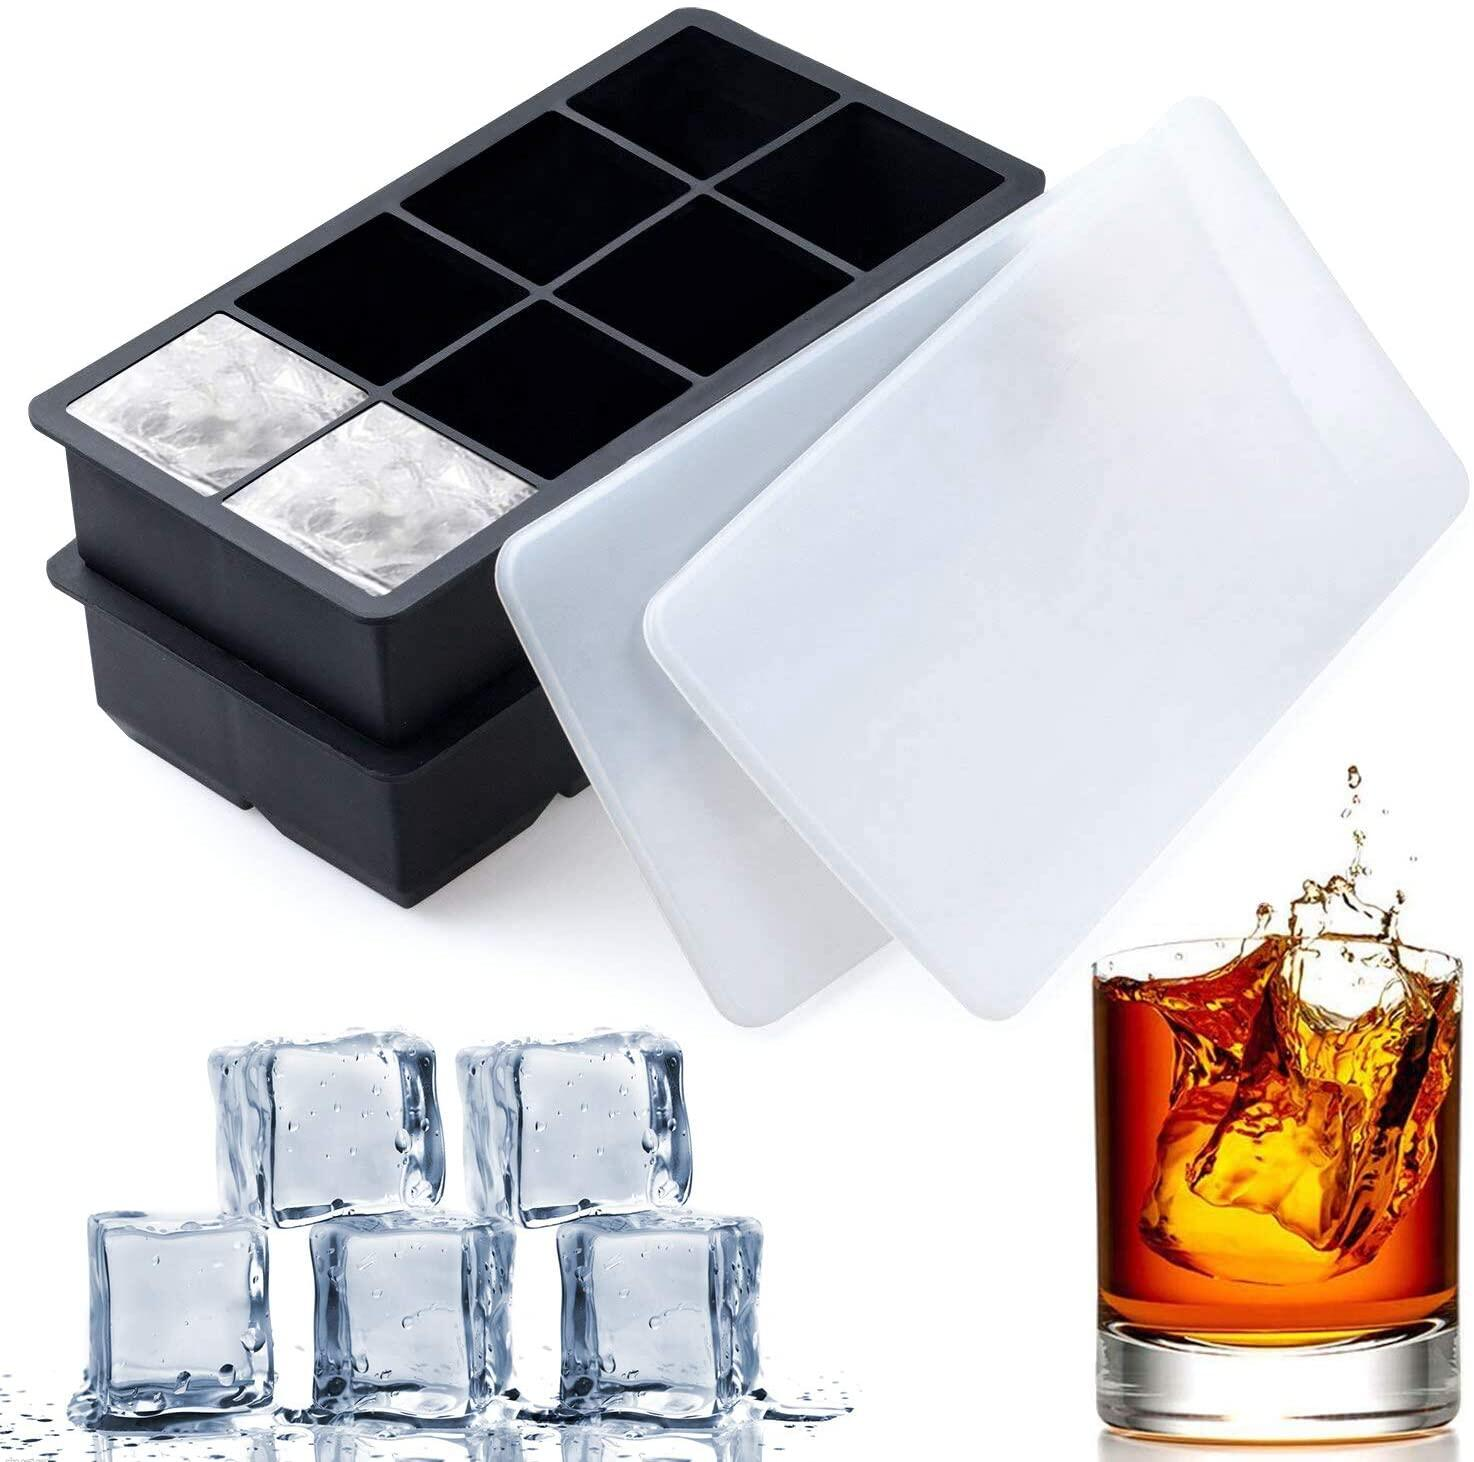 Larger Cubes 8 Pack /& 2 Colors Stackable 14-Ice Tray with No Spill Cover Flexible and Reusable Ice Cube Trays Silicon With Lids BPA Free